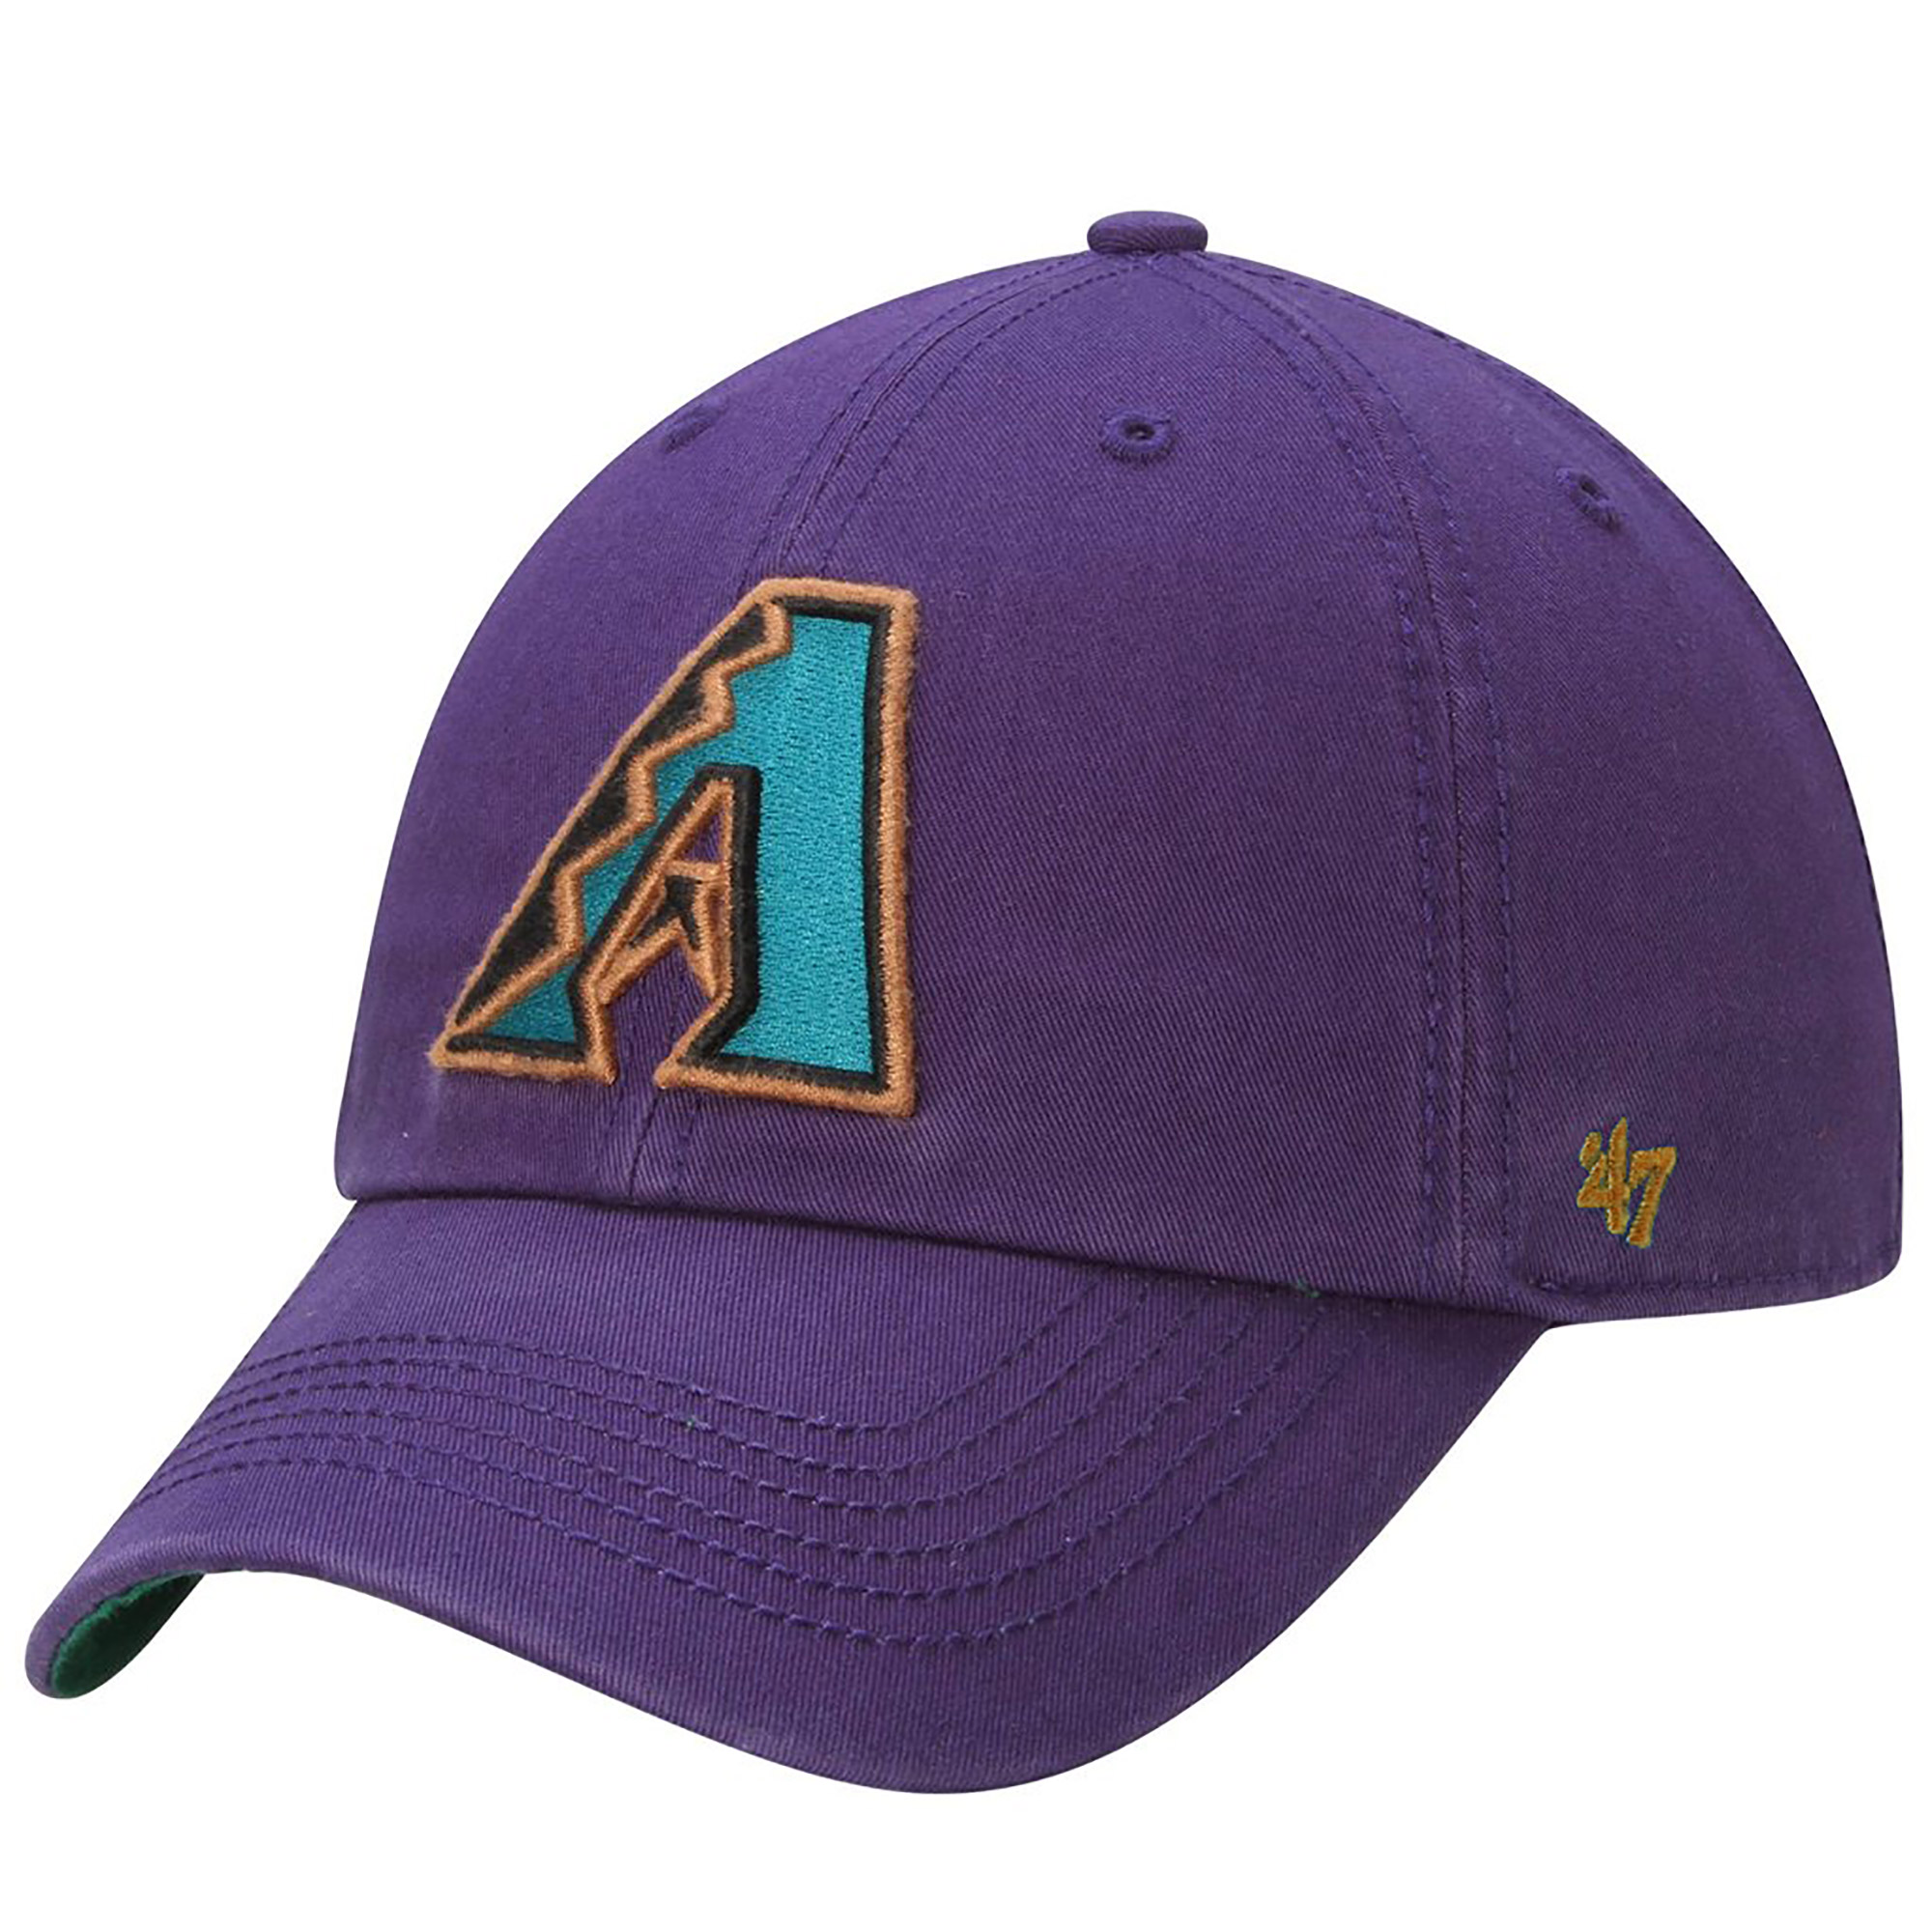 Arizona Diamondbacks '47 Brand Cooperstown Collection Franchise Fitted Hat - Purple